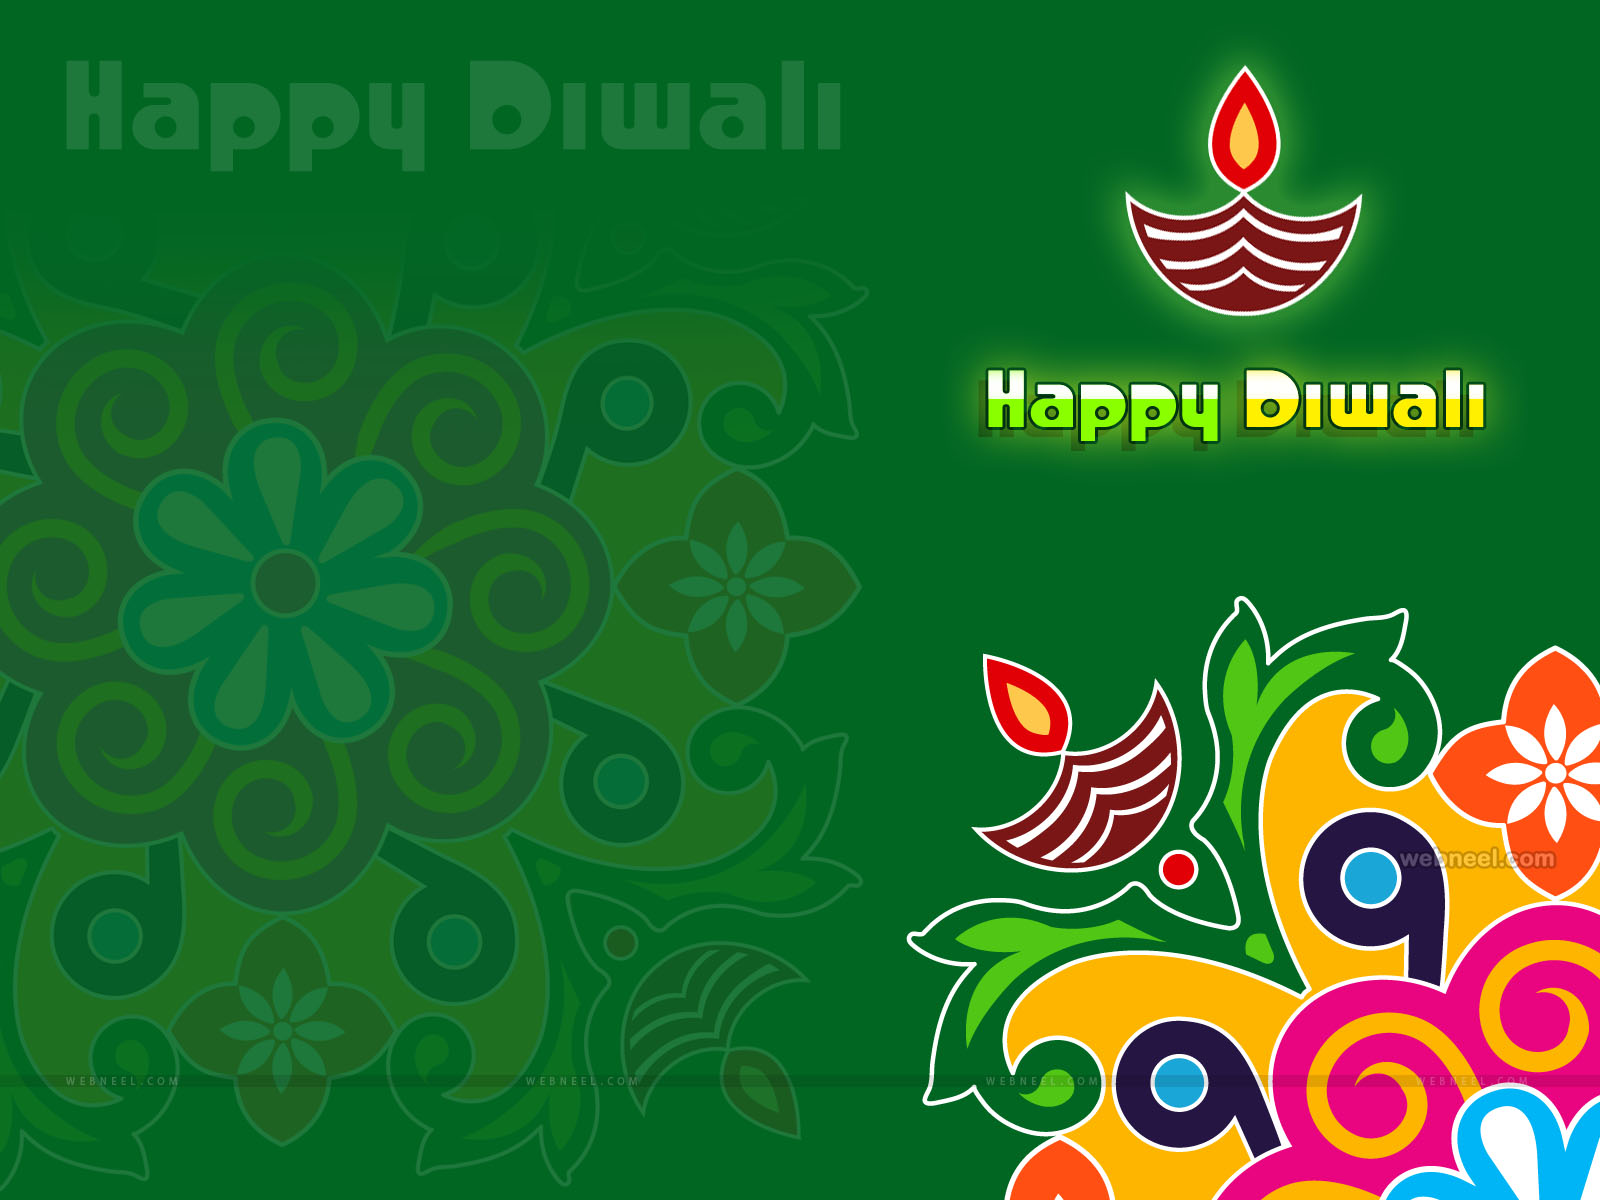 rangoli diya diwali wallpaper design by webneel